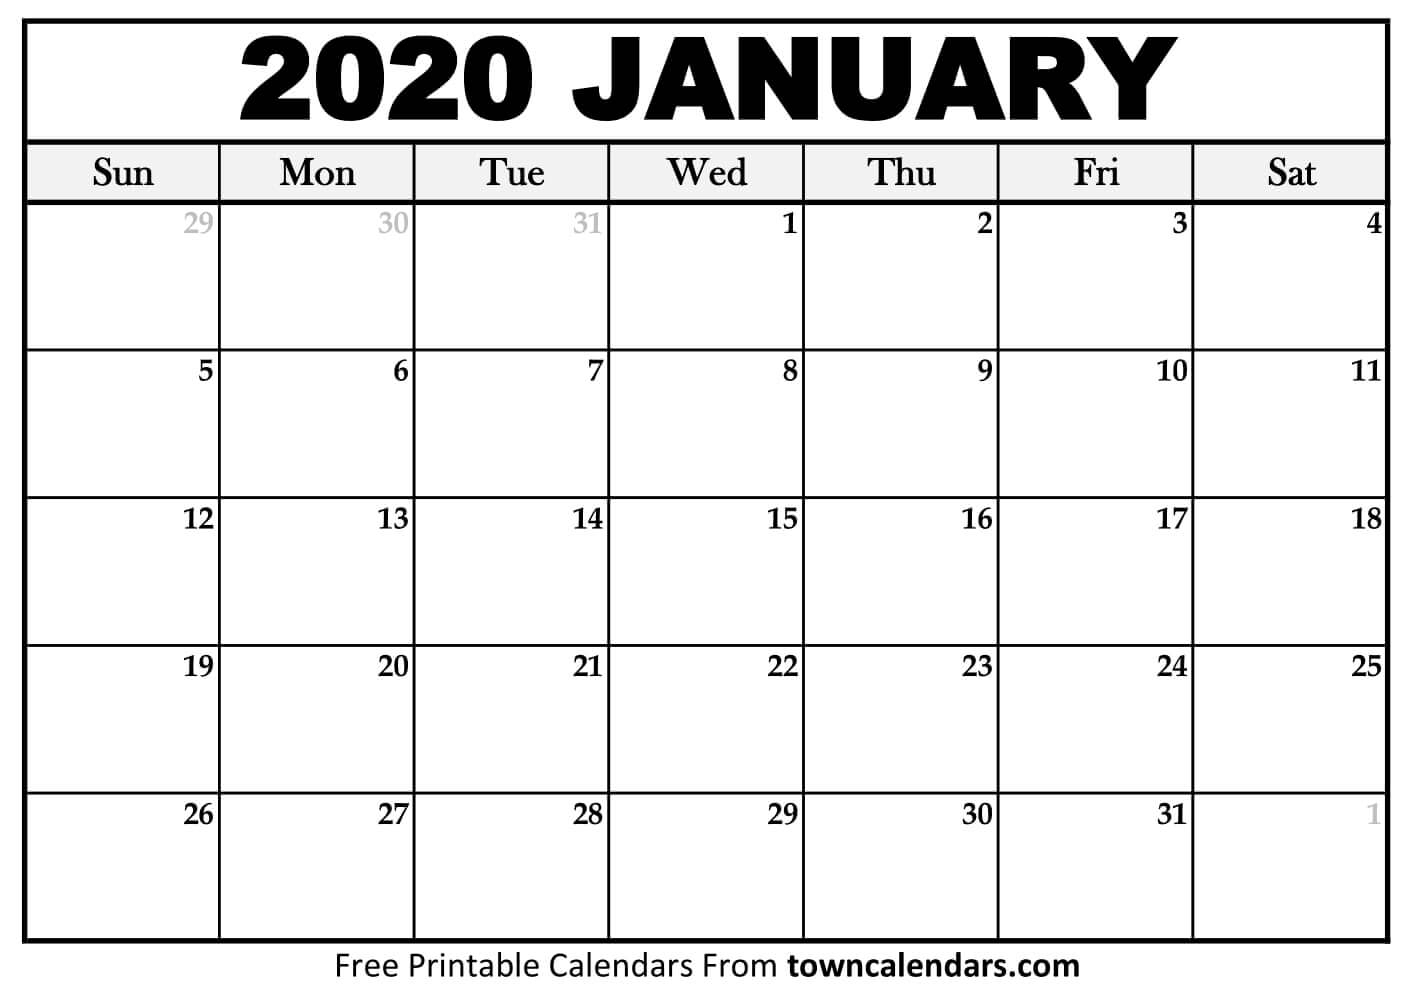 Printable January 2020 Calendar - Towncalendars